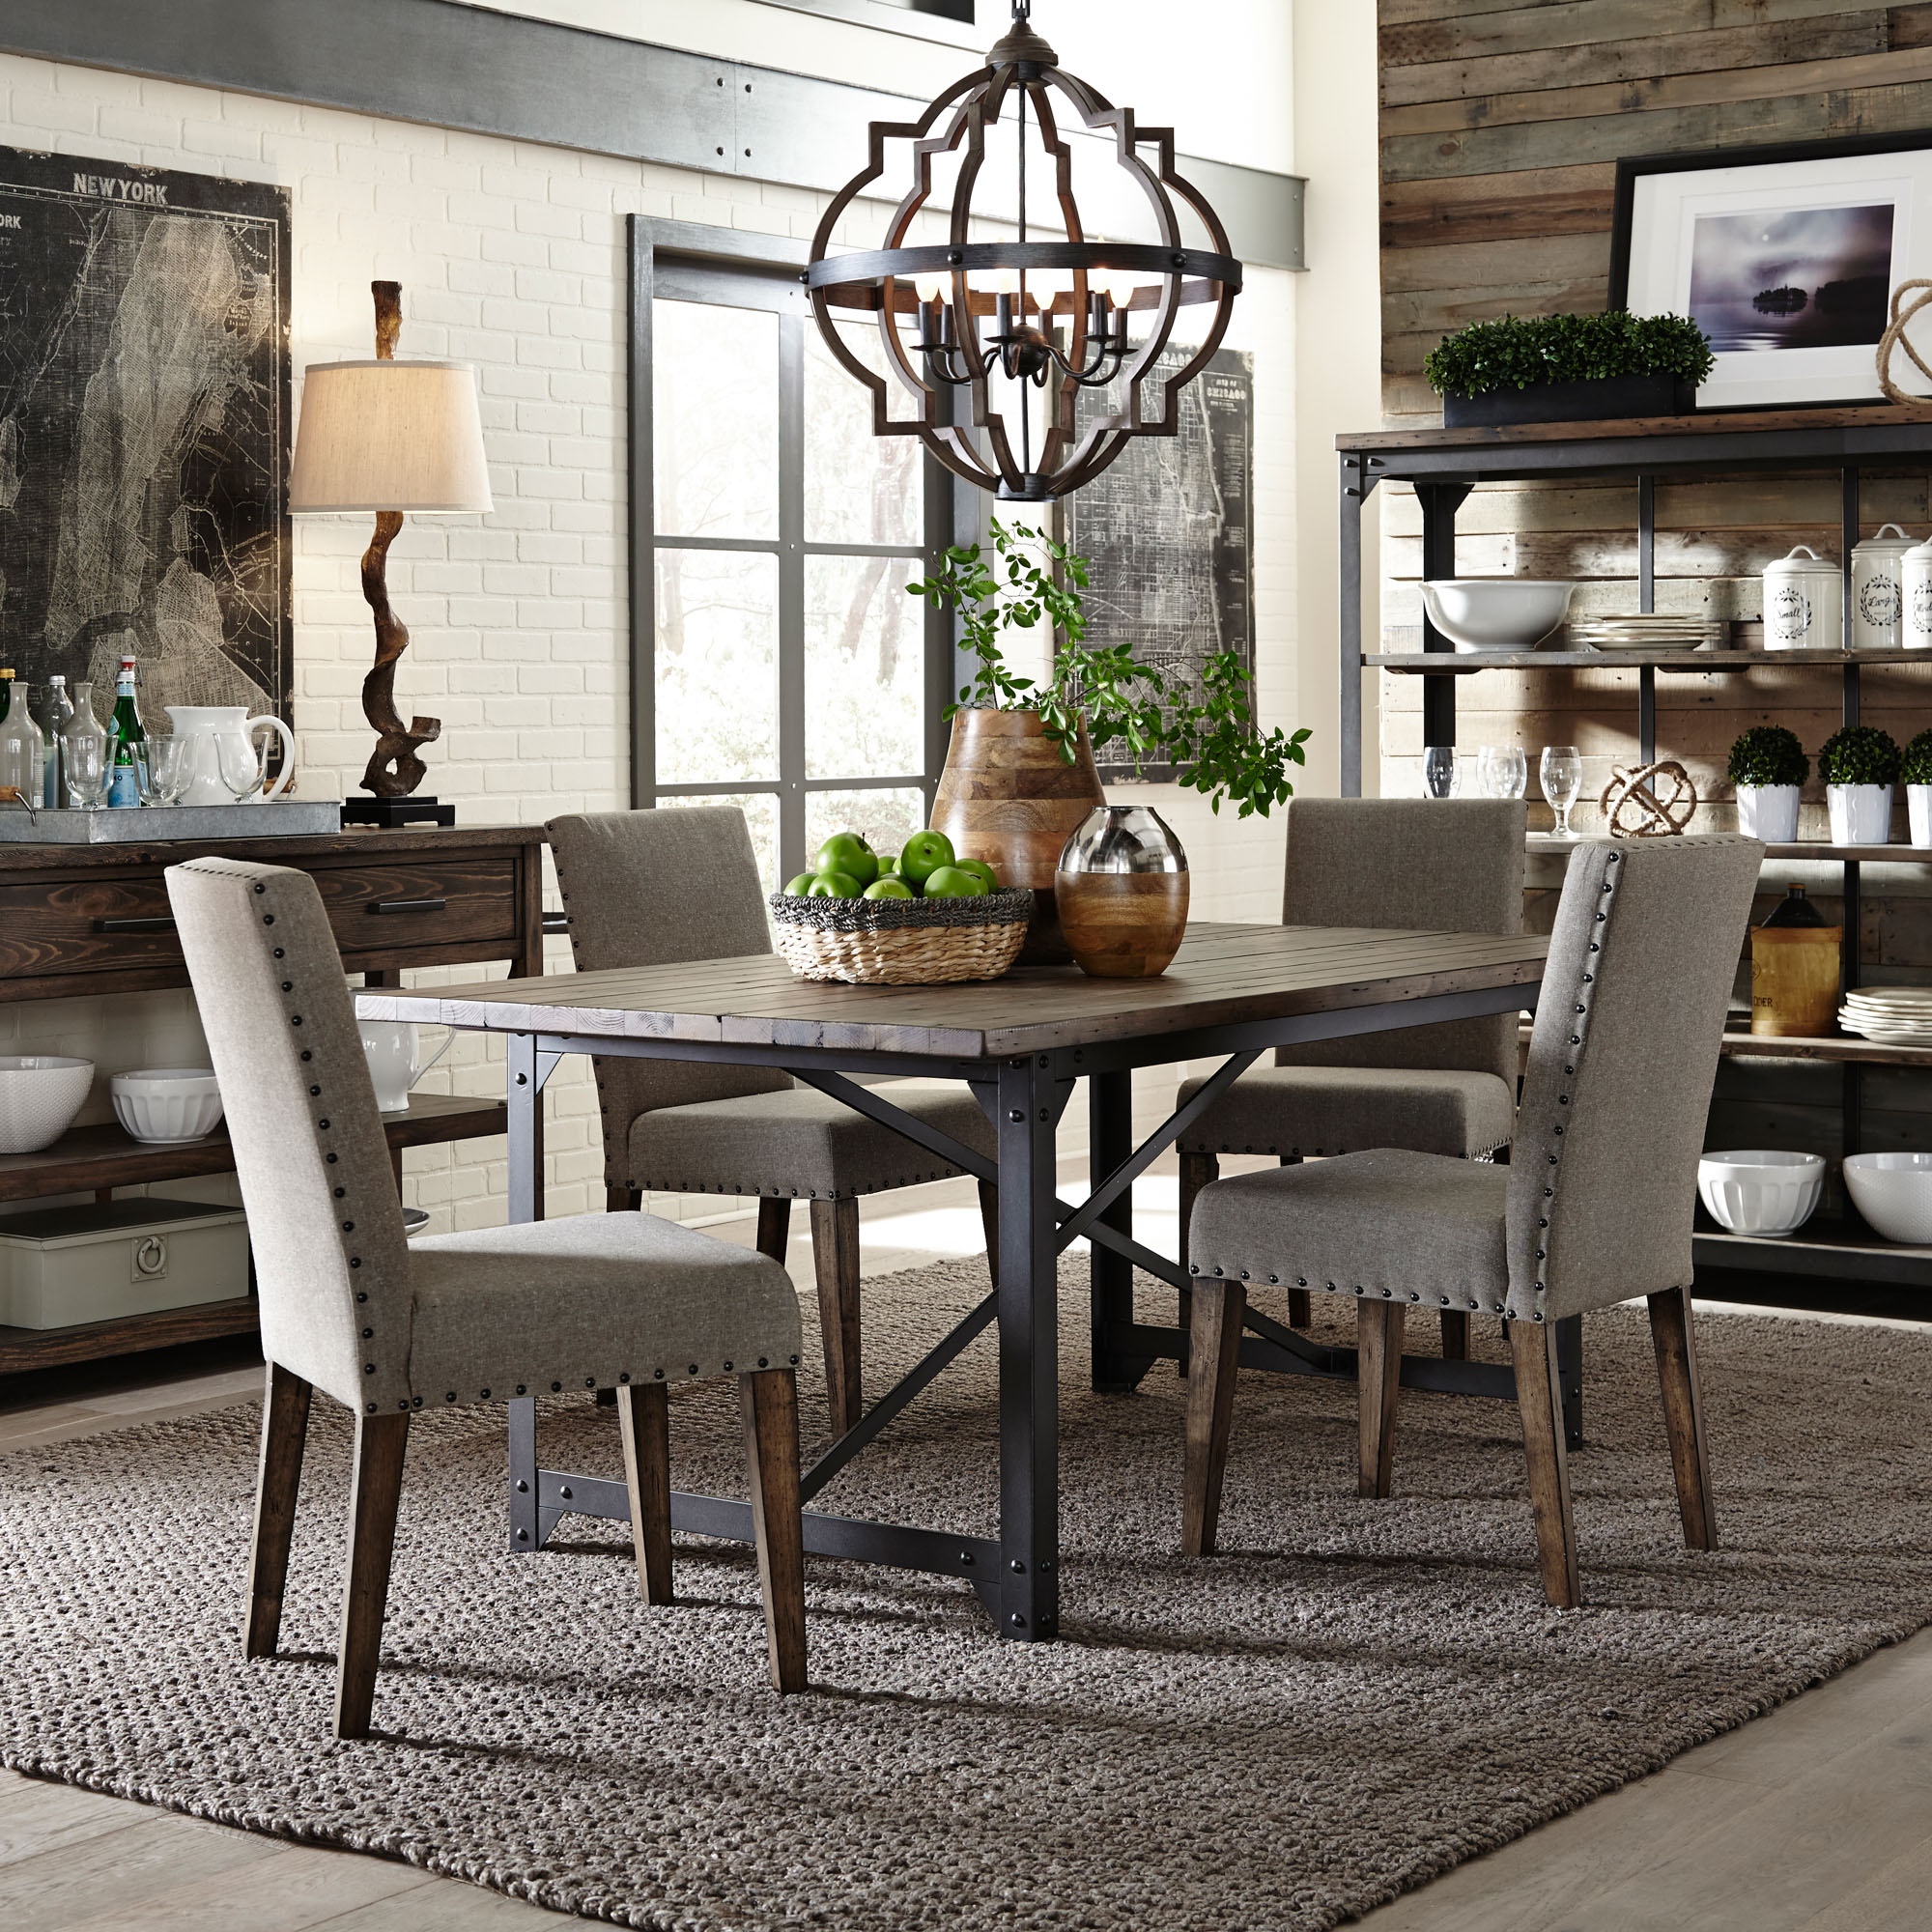 Springfield 3 Piece Dining Sets For Preferred Dining Room Sets, Dining Room Furniture (View 7 of 20)